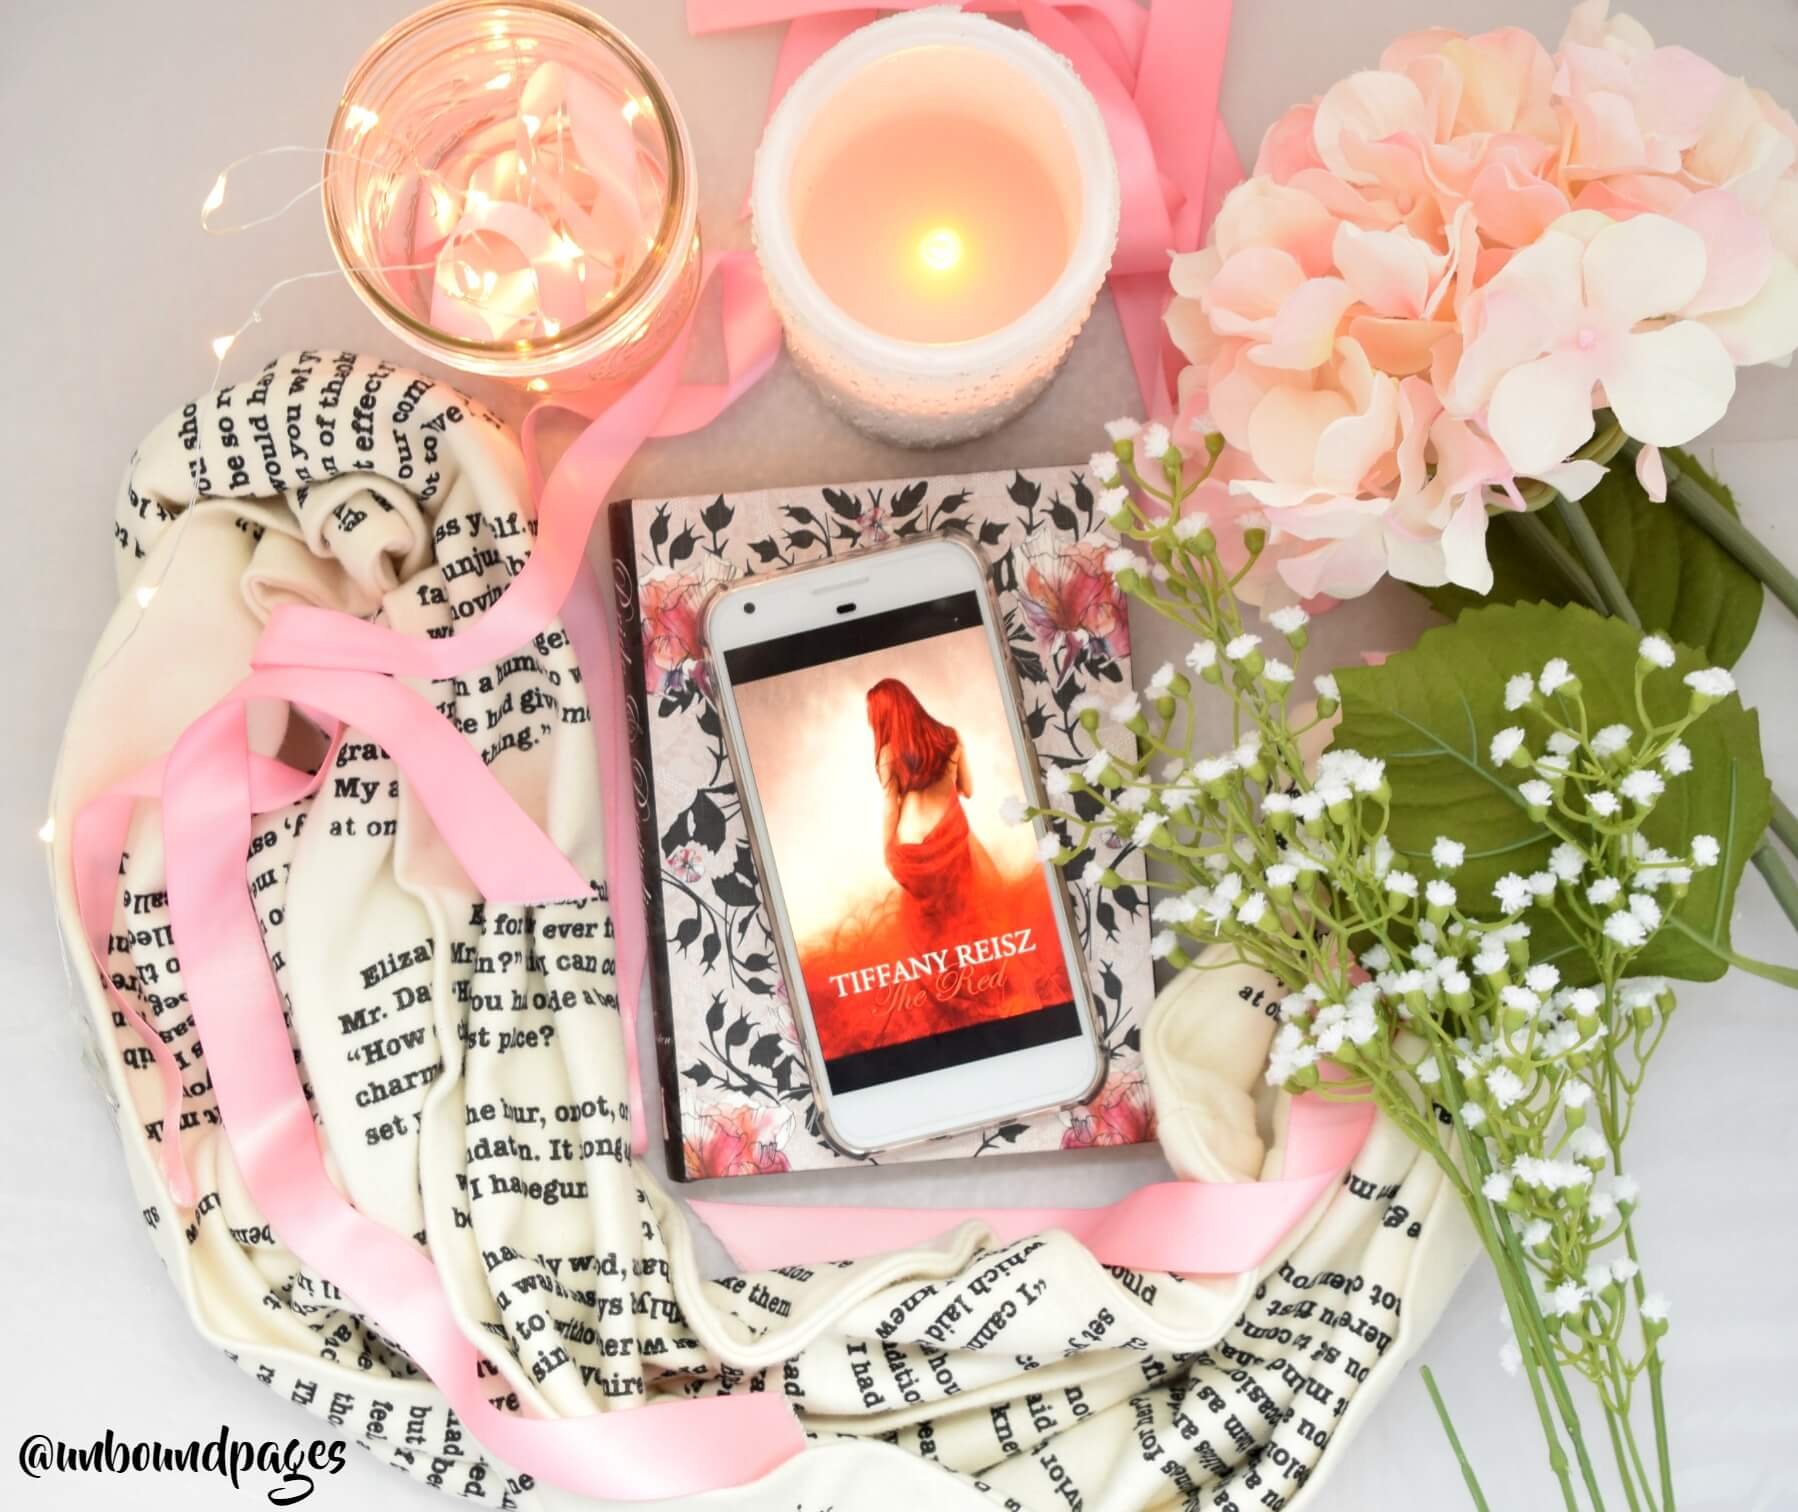 The Red is steamy as hell in true Tiffany Reisz fashion - unboundpages.com